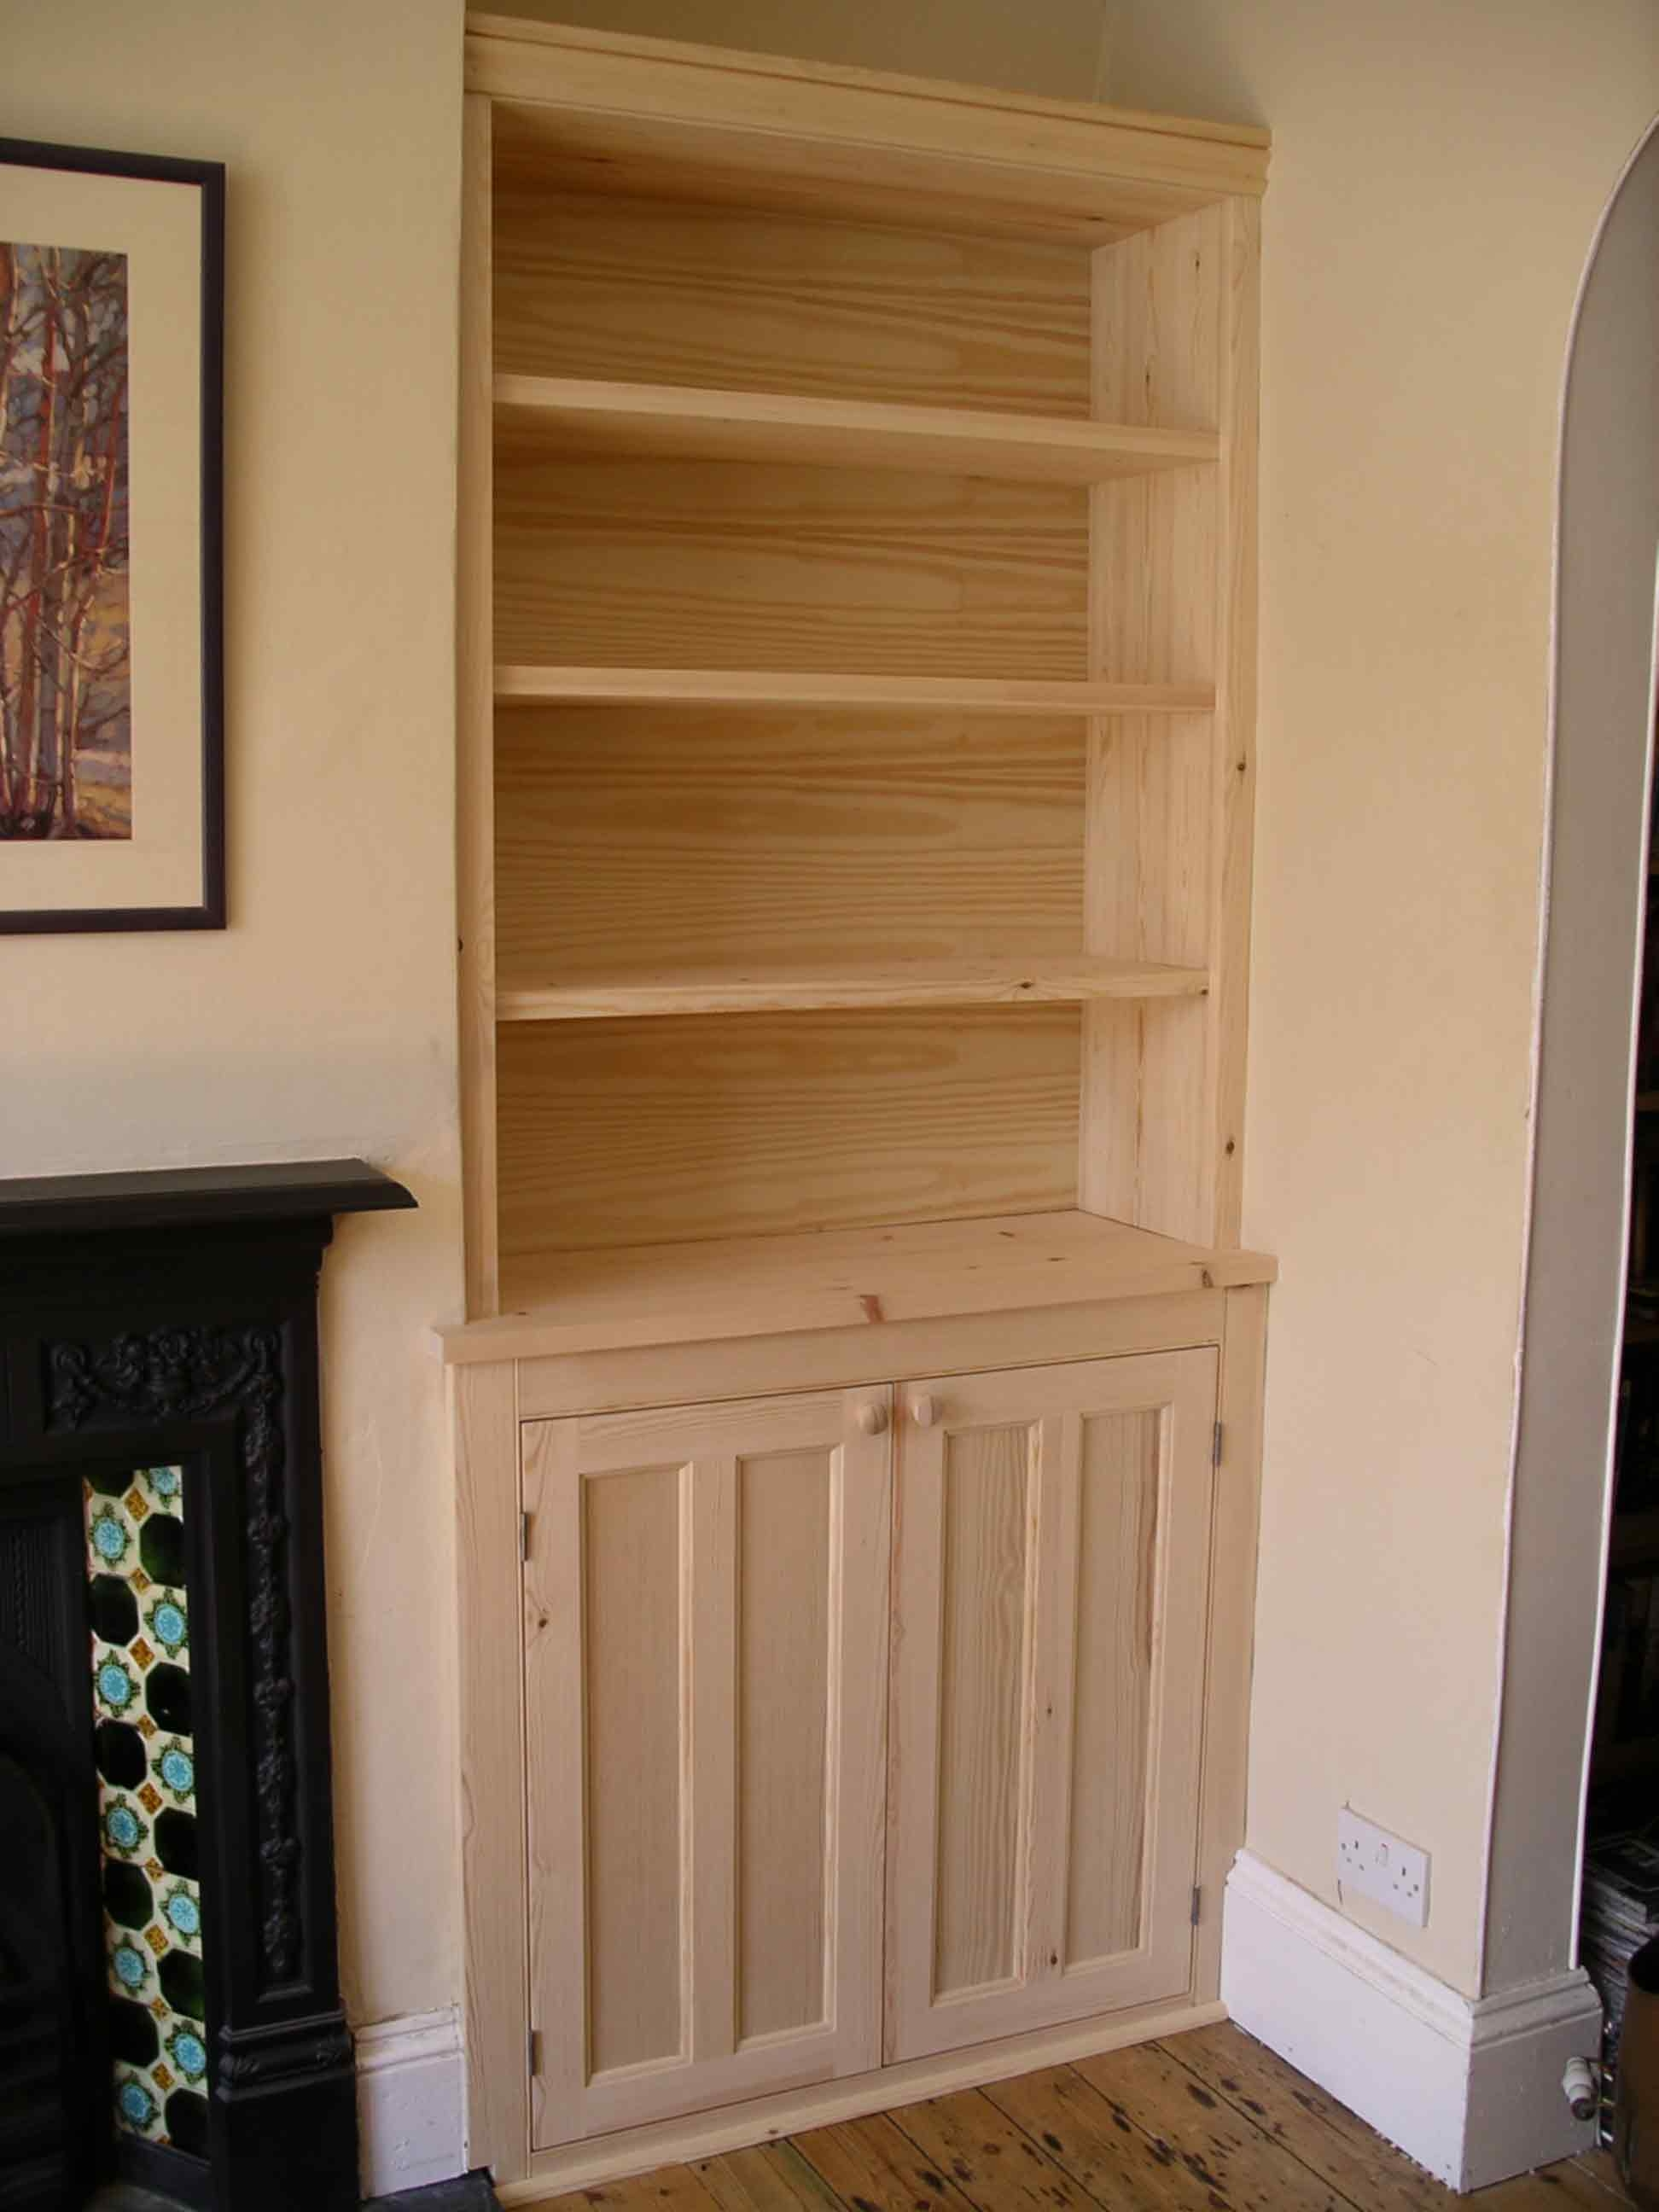 Period Style Alcove Cabinet In Solid Softwood Ready For Painting With Regard To Alcove Wardrobes Designs (View 14 of 15)